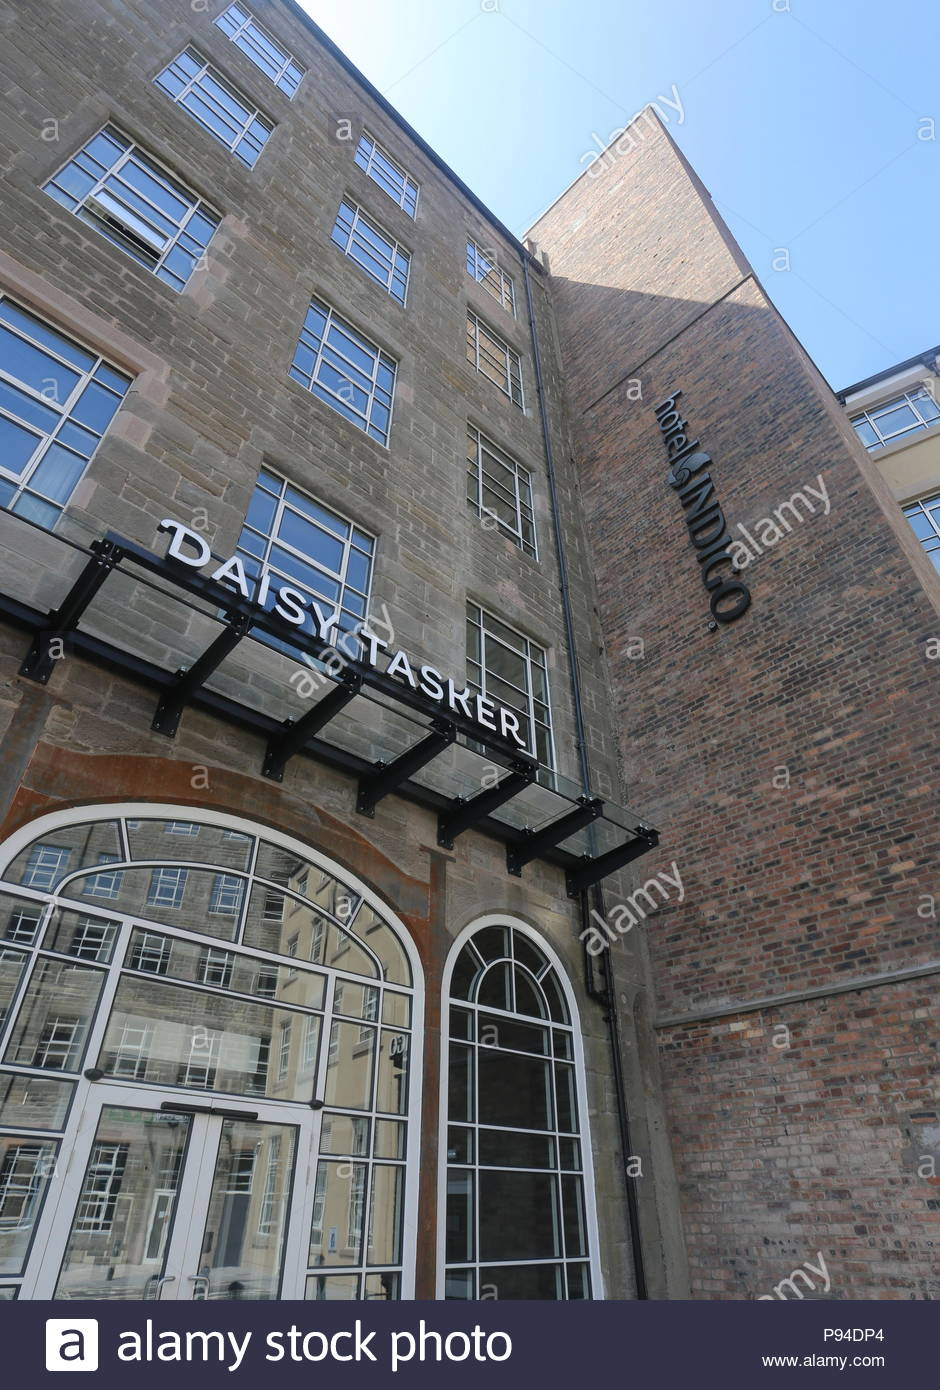 Sign for Daisy Tasker Dundee Scotland  July 2018 - Stock Image